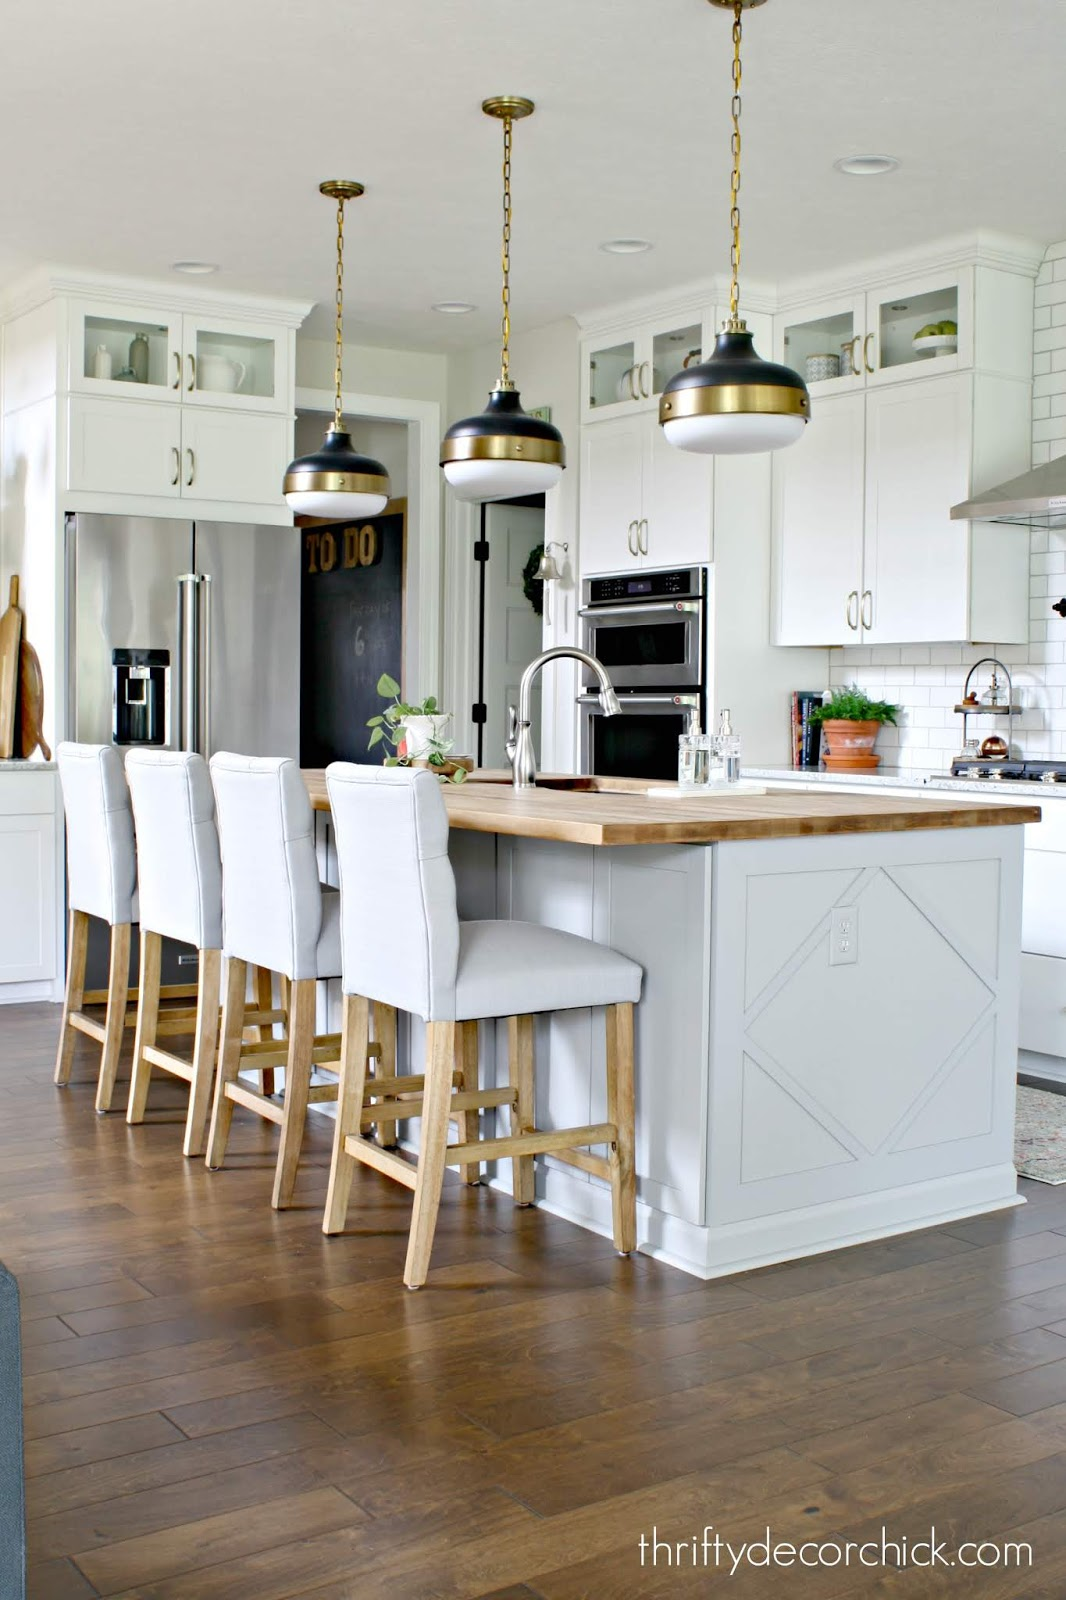 How to dress up a kitchen island